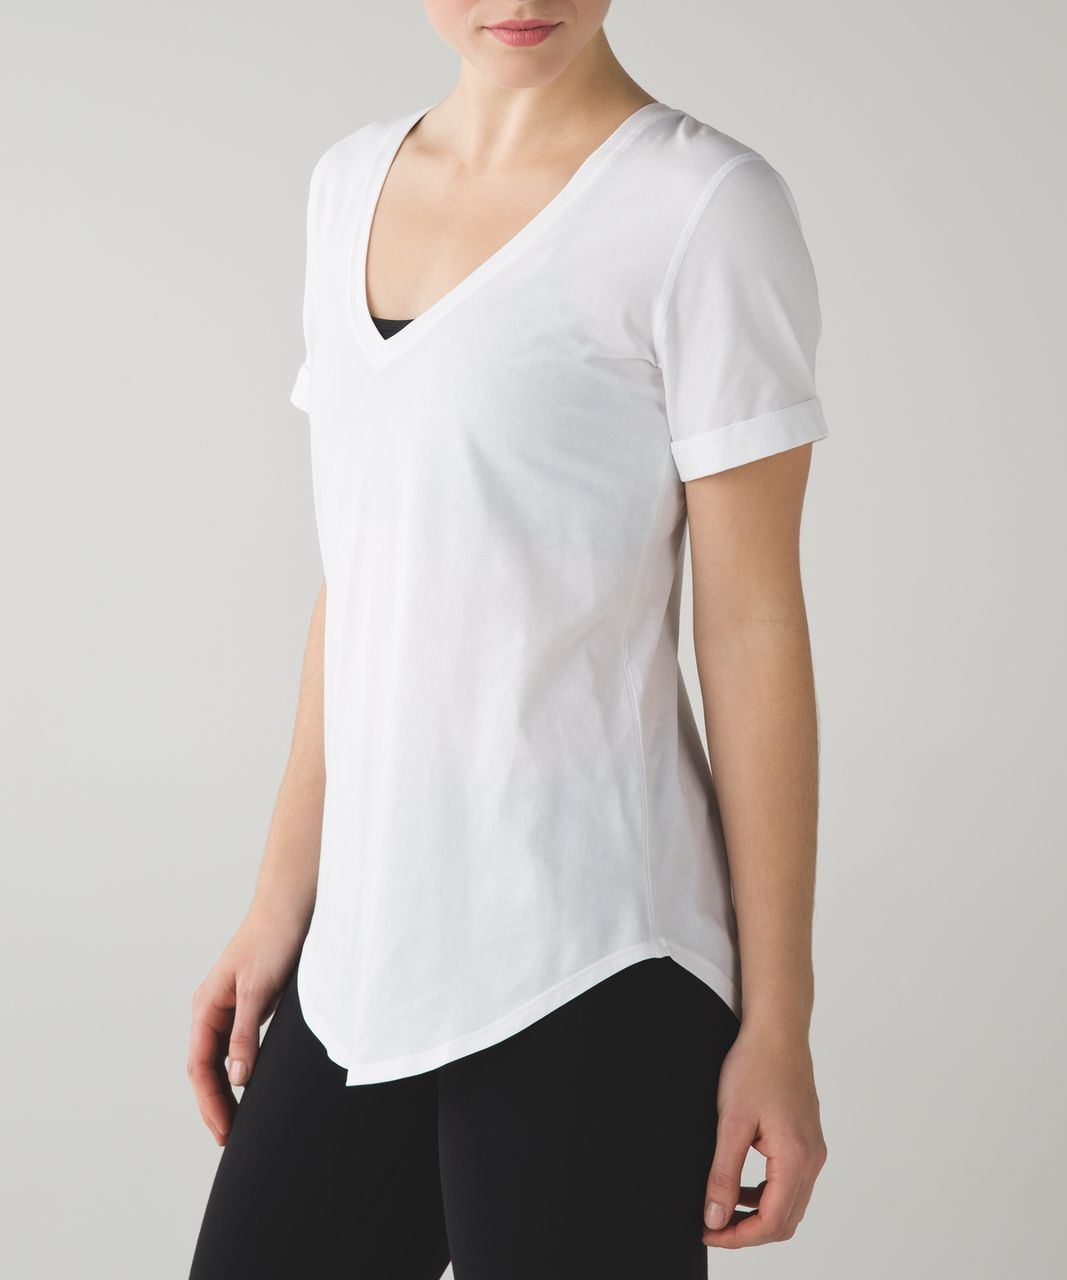 Lululemon Love Tee II - White